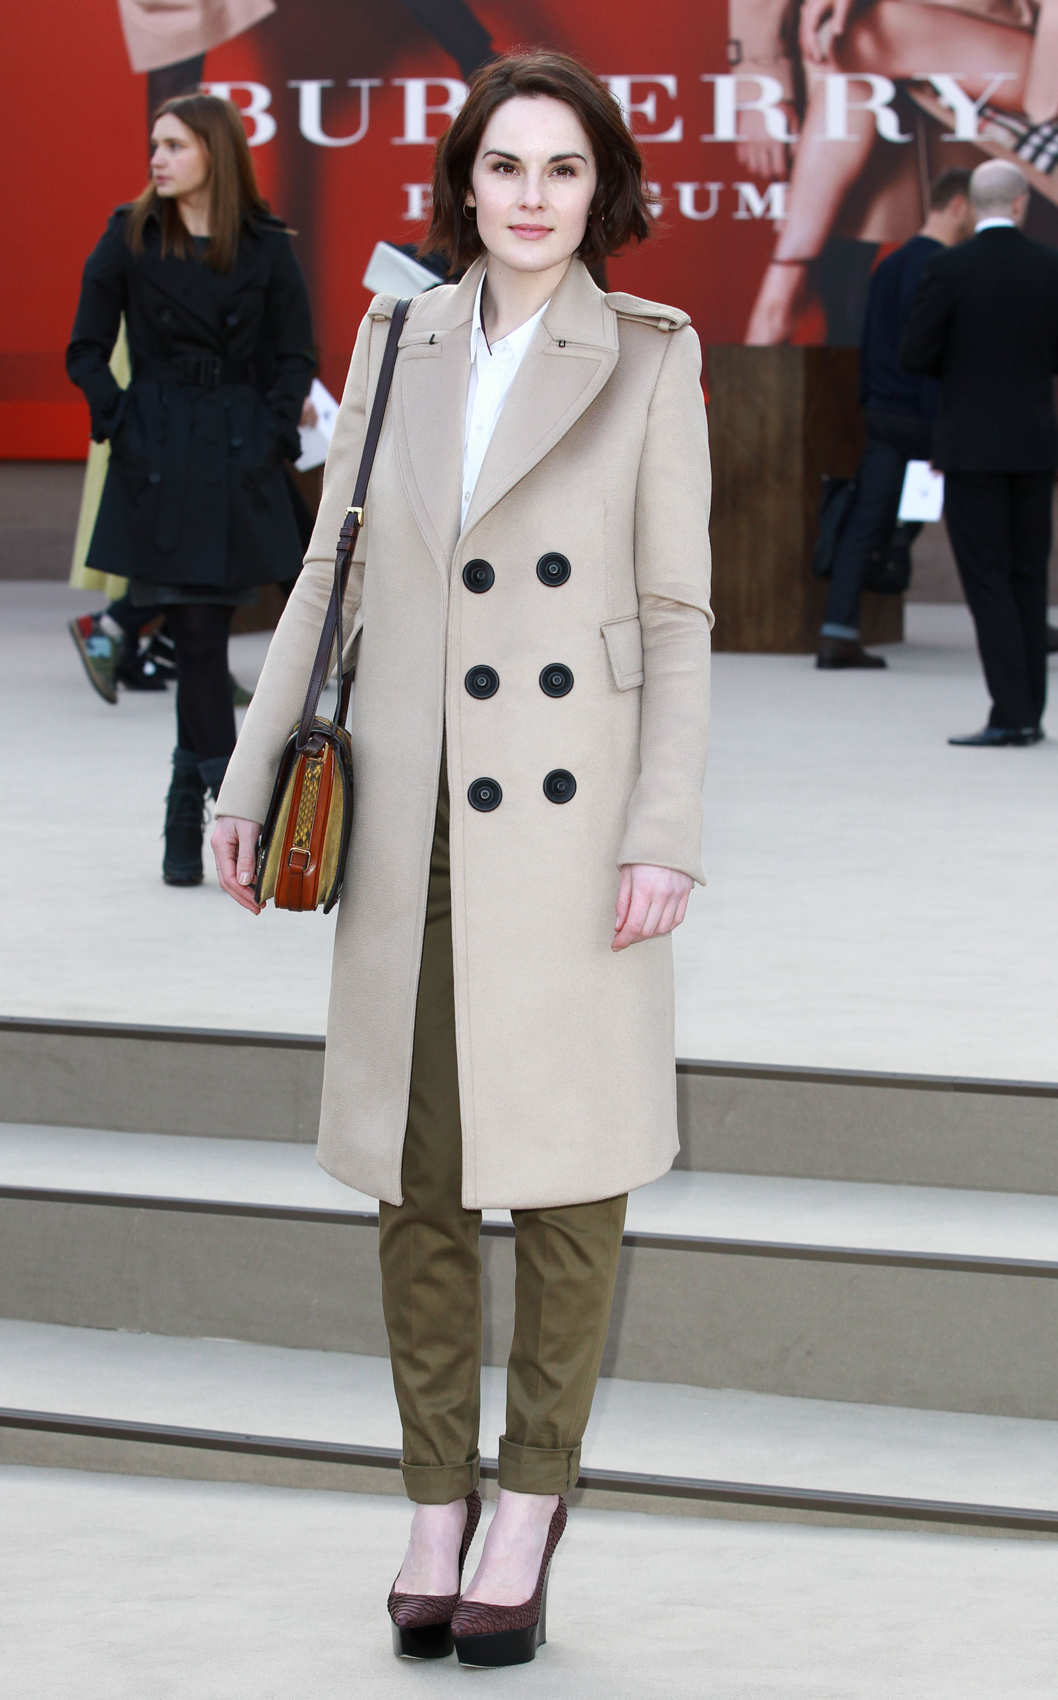 LONDON, UNITED KINGDOM - FEBRUARY 18: Michelle Dockery attends the Burberry Prorsum show during London Fashion Week Fall/Winter 2013/14 at  on February 18, 2013 in London, England. (Photo by Fred Duval/Getty Images)